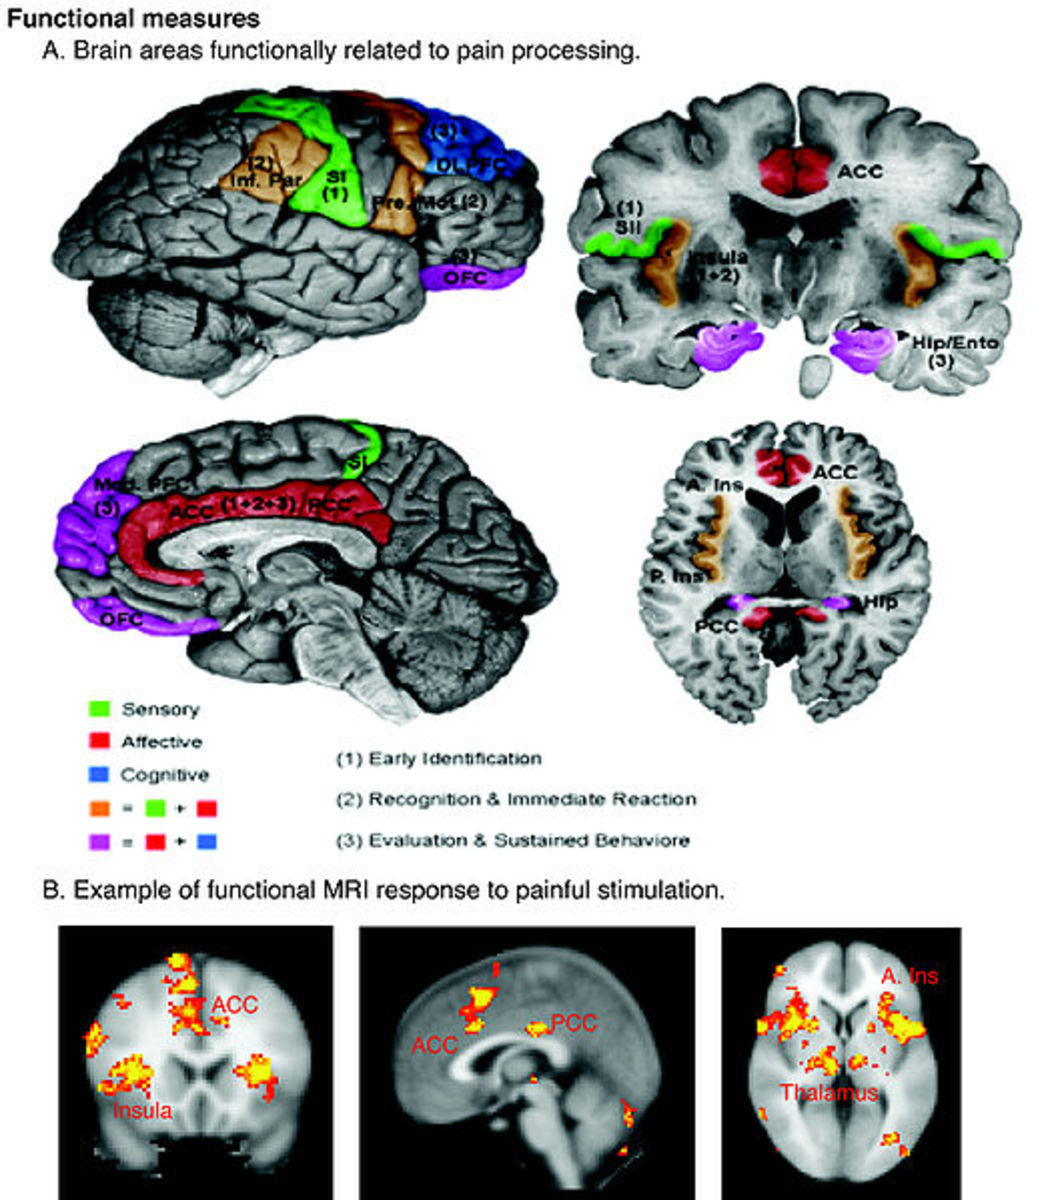 Our brain processes pain in different areas